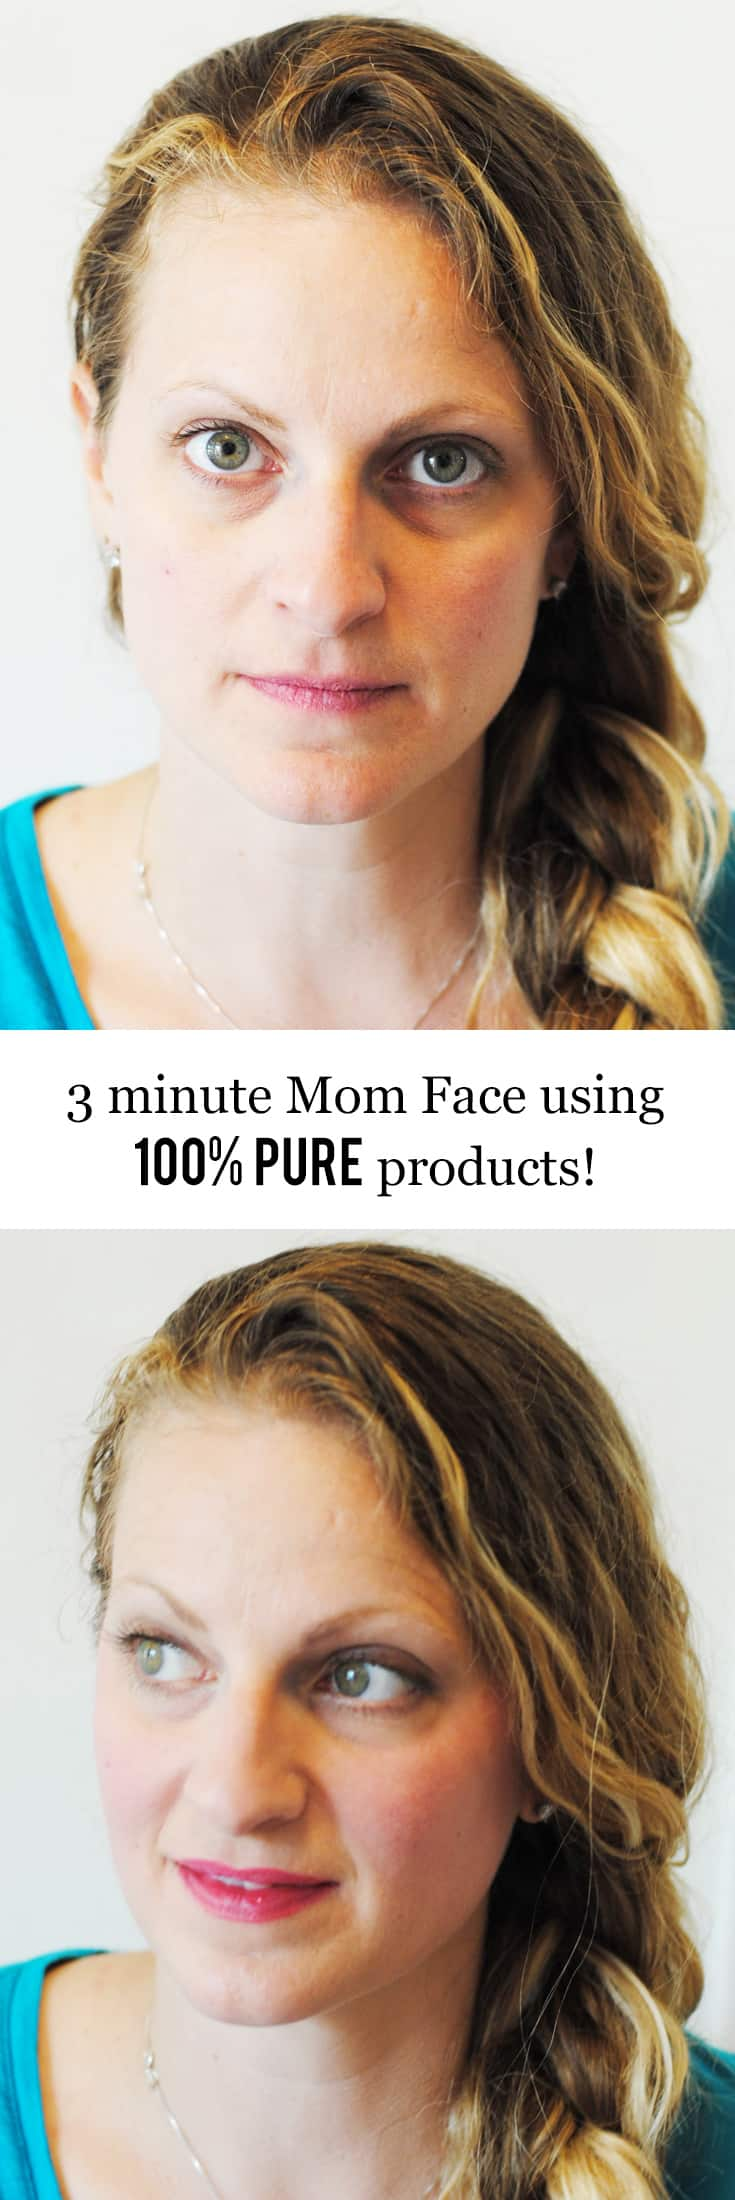 3 Minute Mom Face with 100% Pure